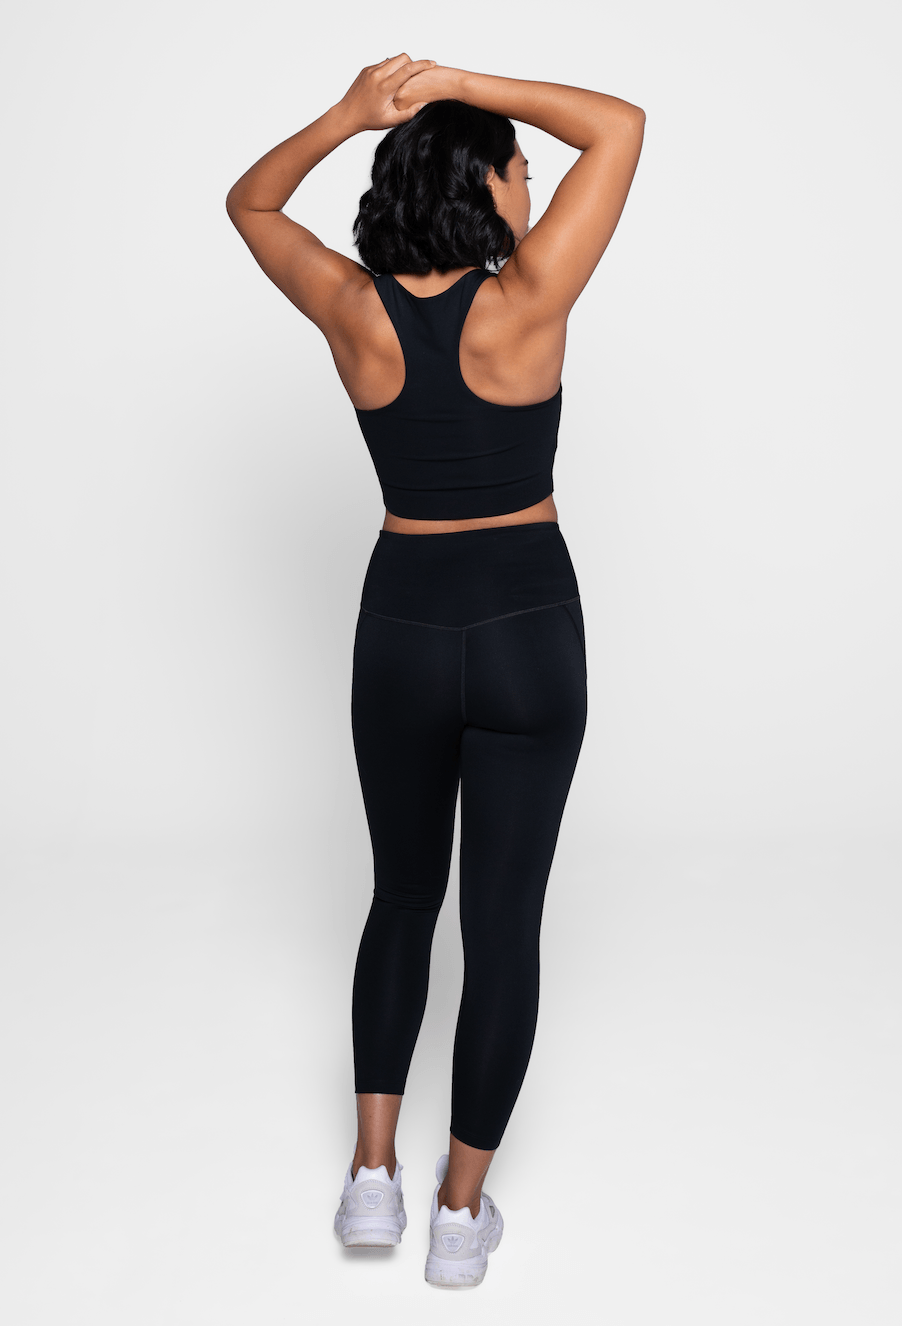 storeethic,Leggings,Svartar Compressive Háar Leggings ?id=12828435021897